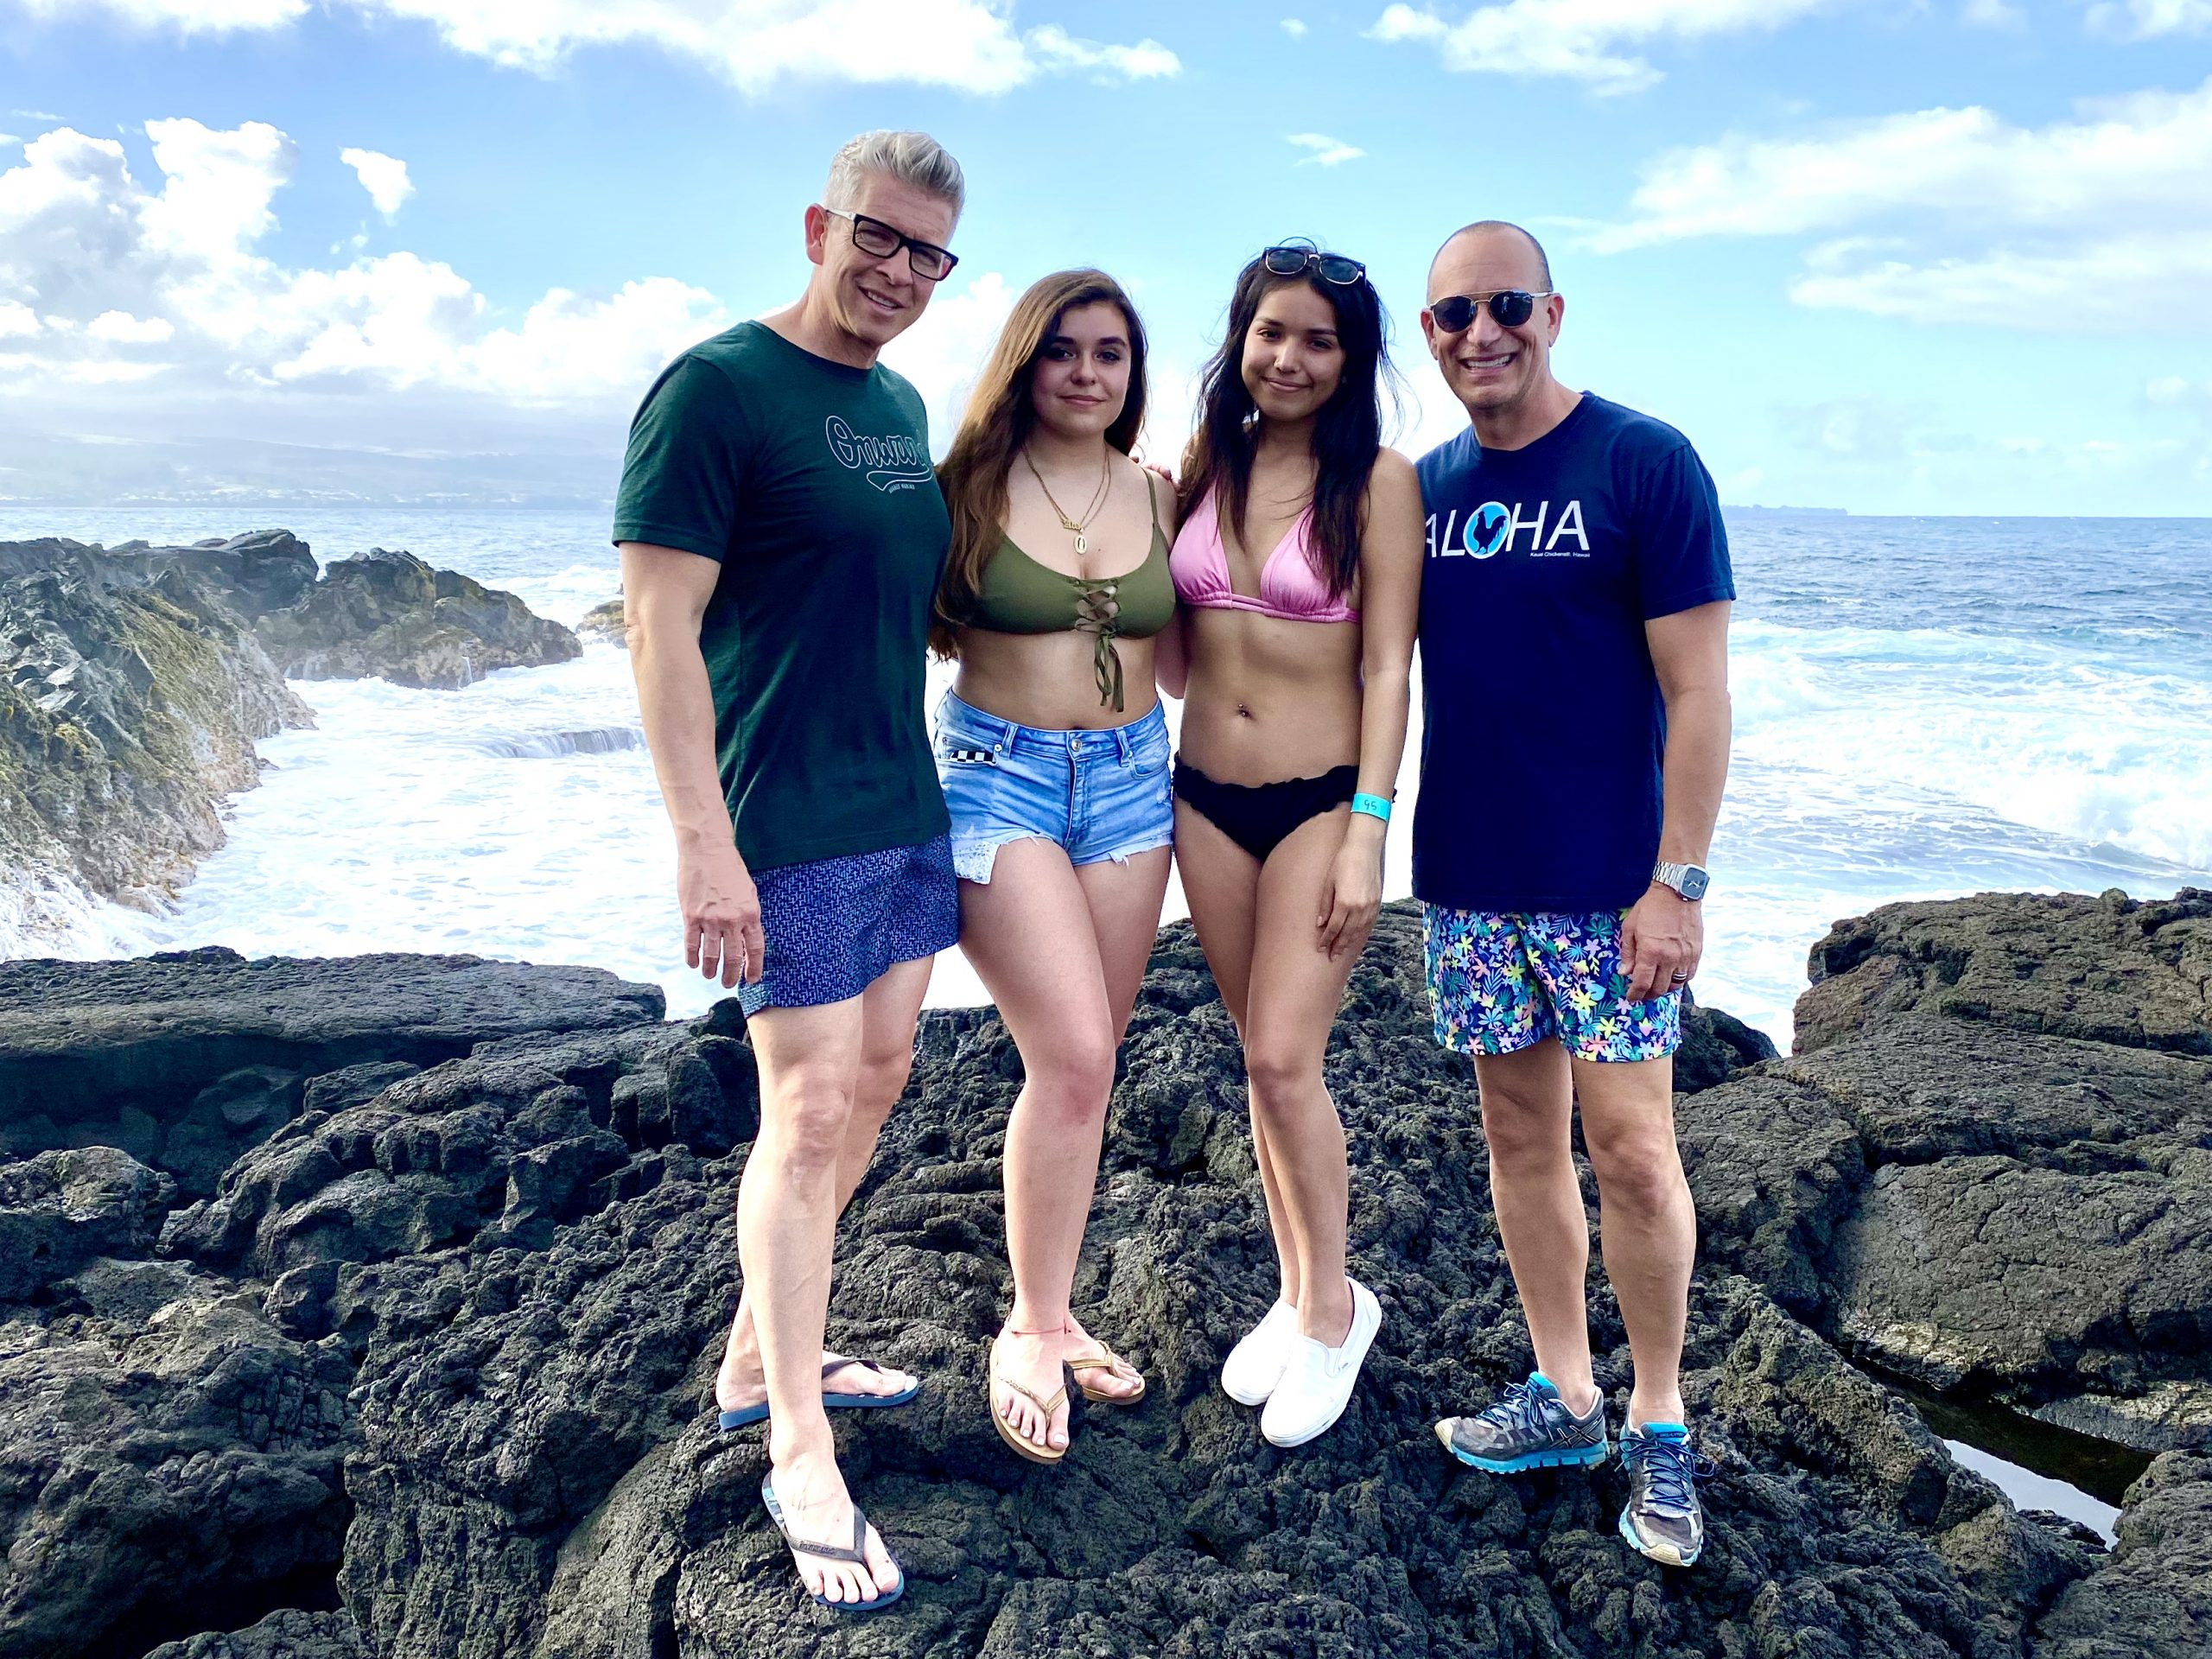 gay family with two dads and two daughters poses on lava rocks near ocean in Hilo, Hawaii